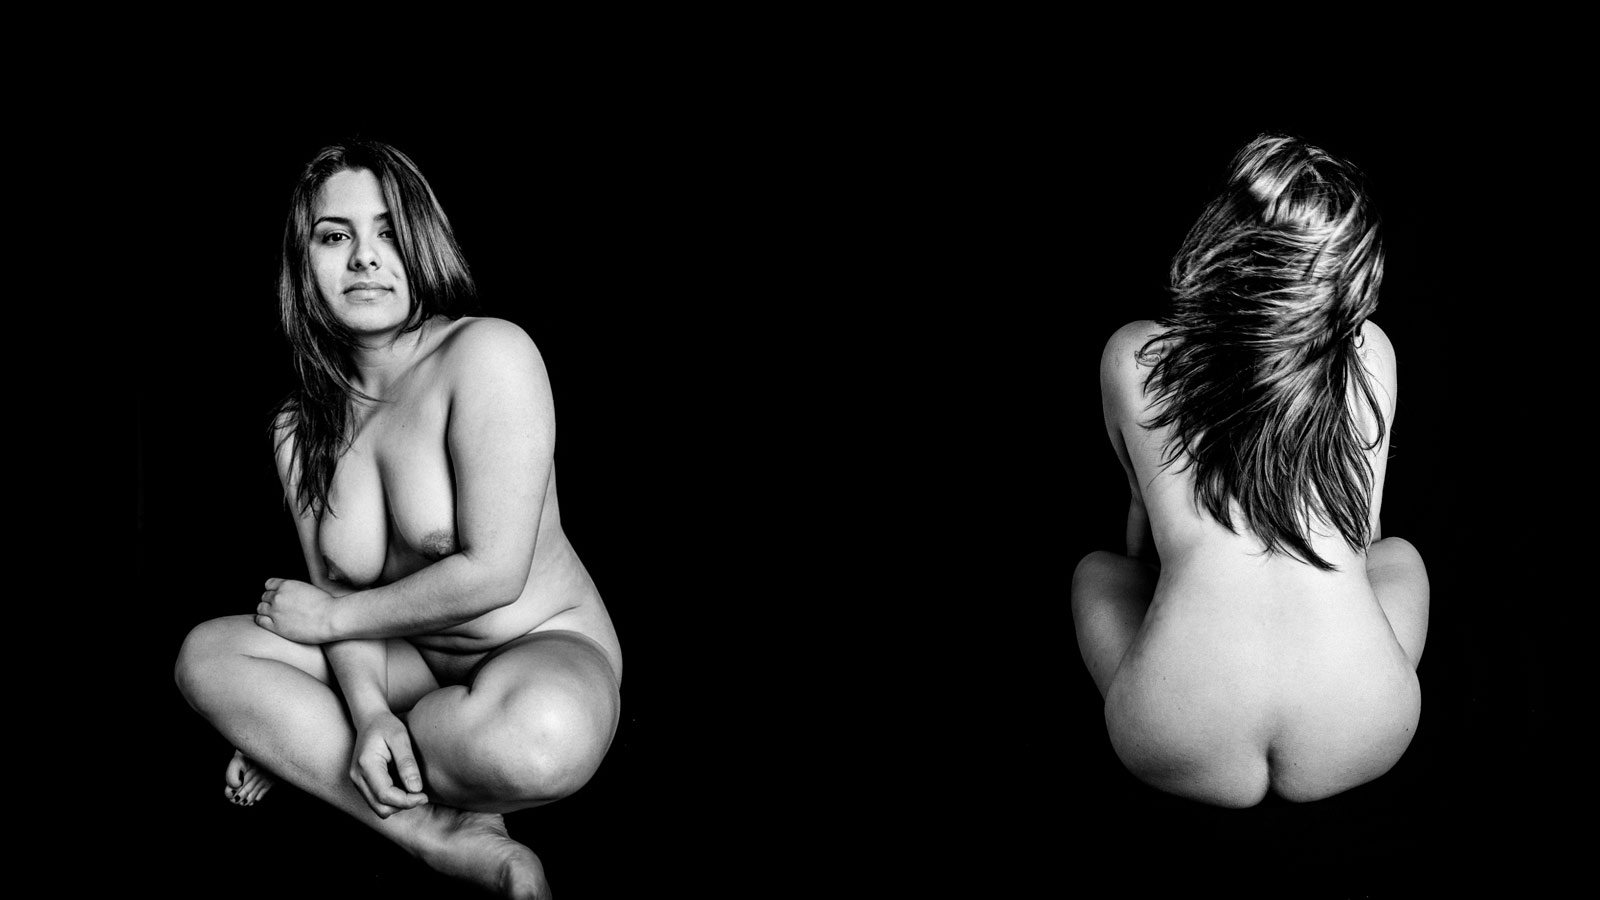 Nude in the dark © by matheu.es